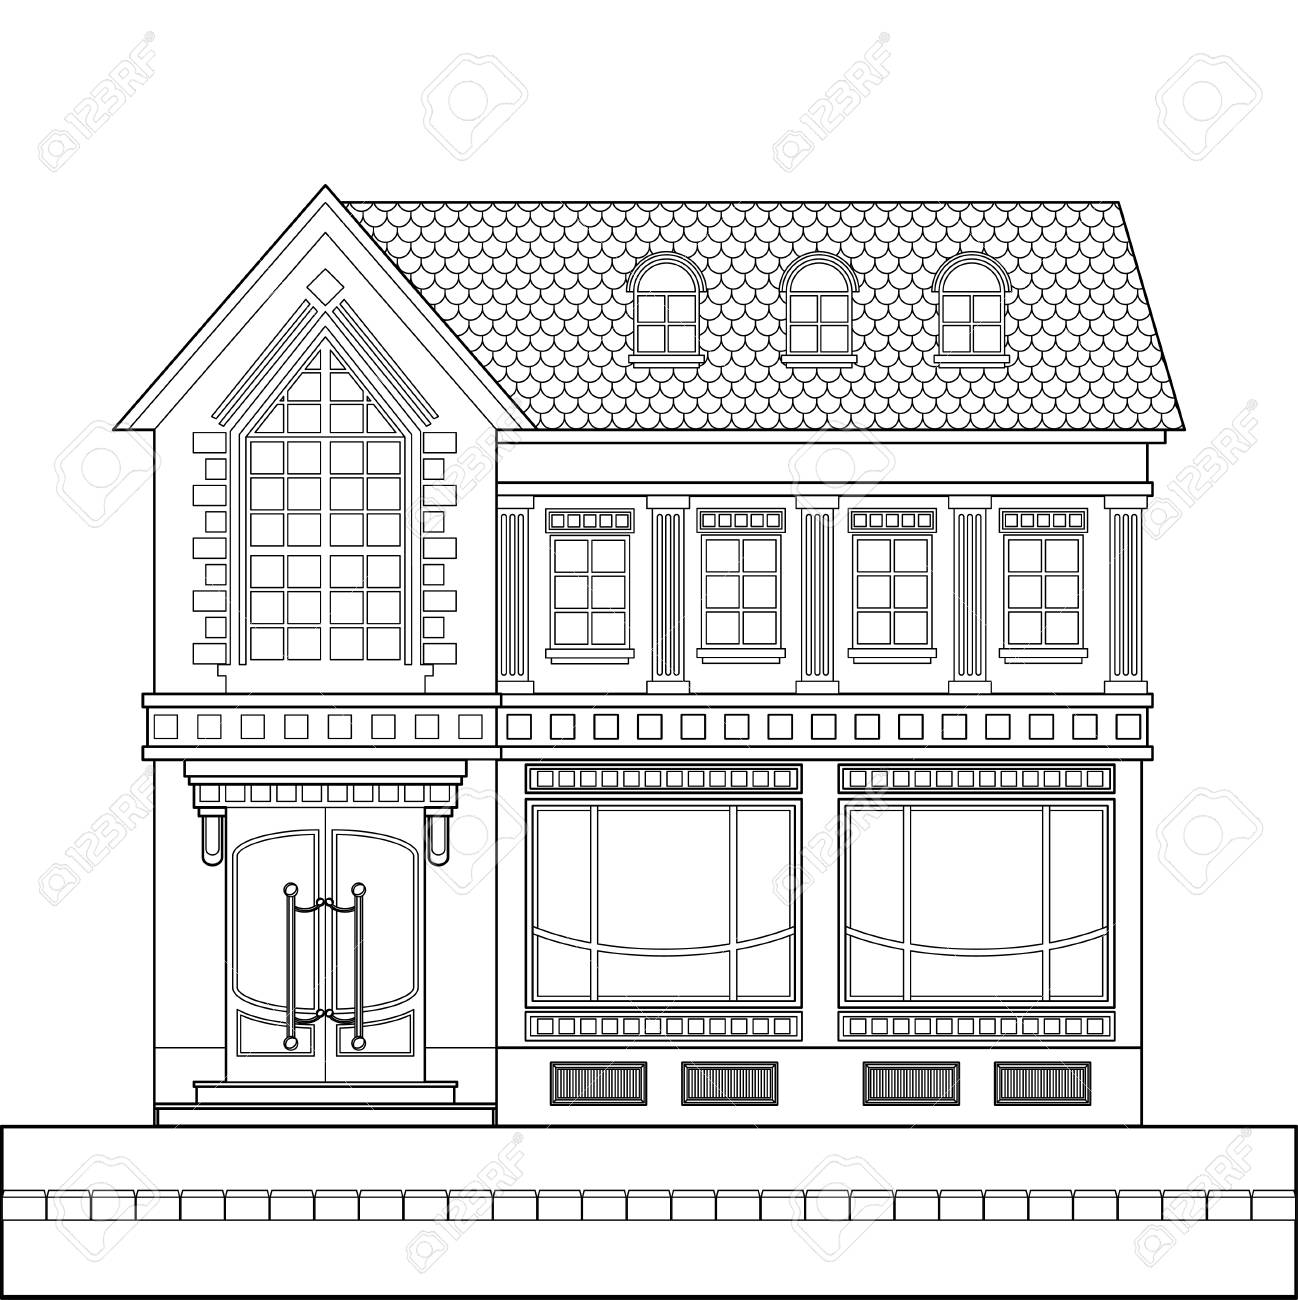 A drawing of a classic brick two-story building with shop windows